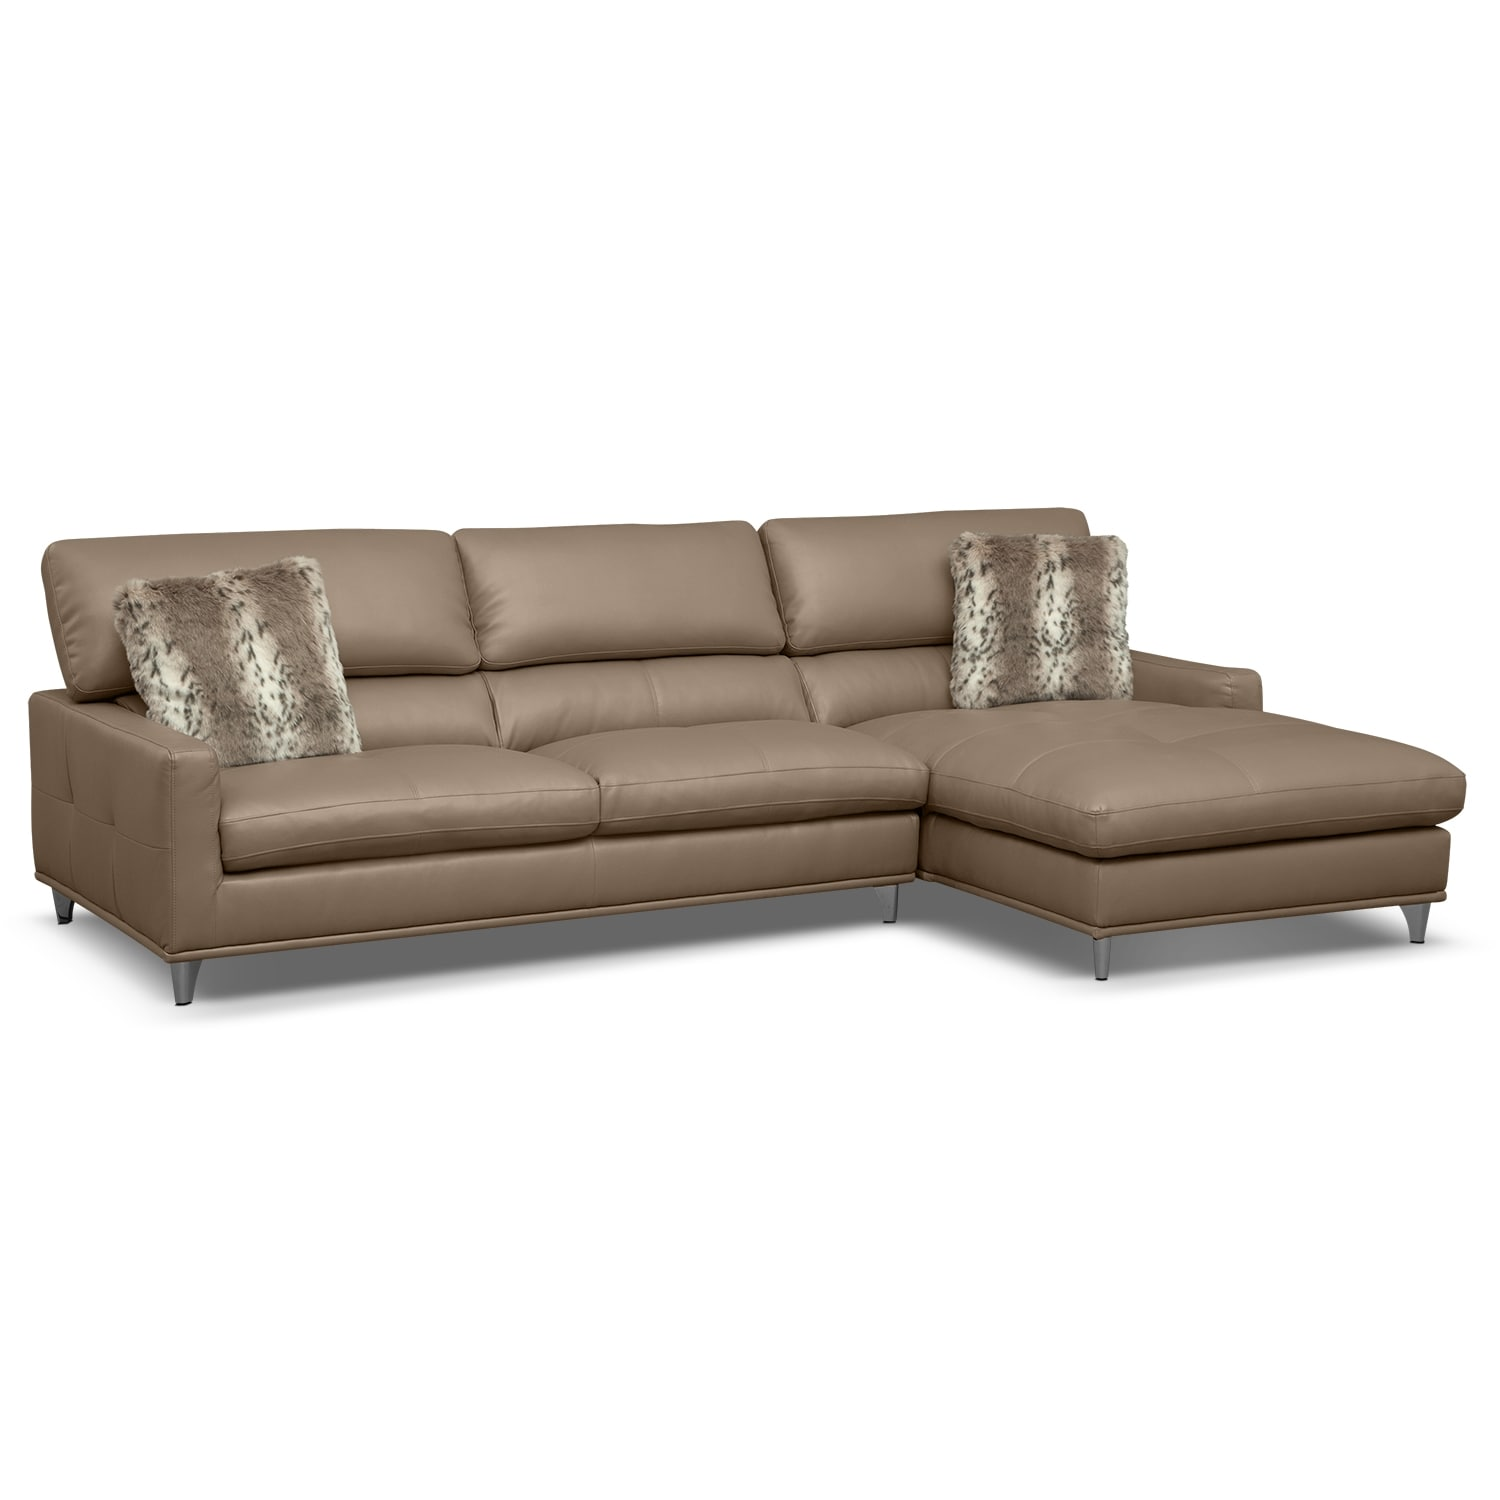 Mystique Leather 2 Pc Sectional Value City Furniture